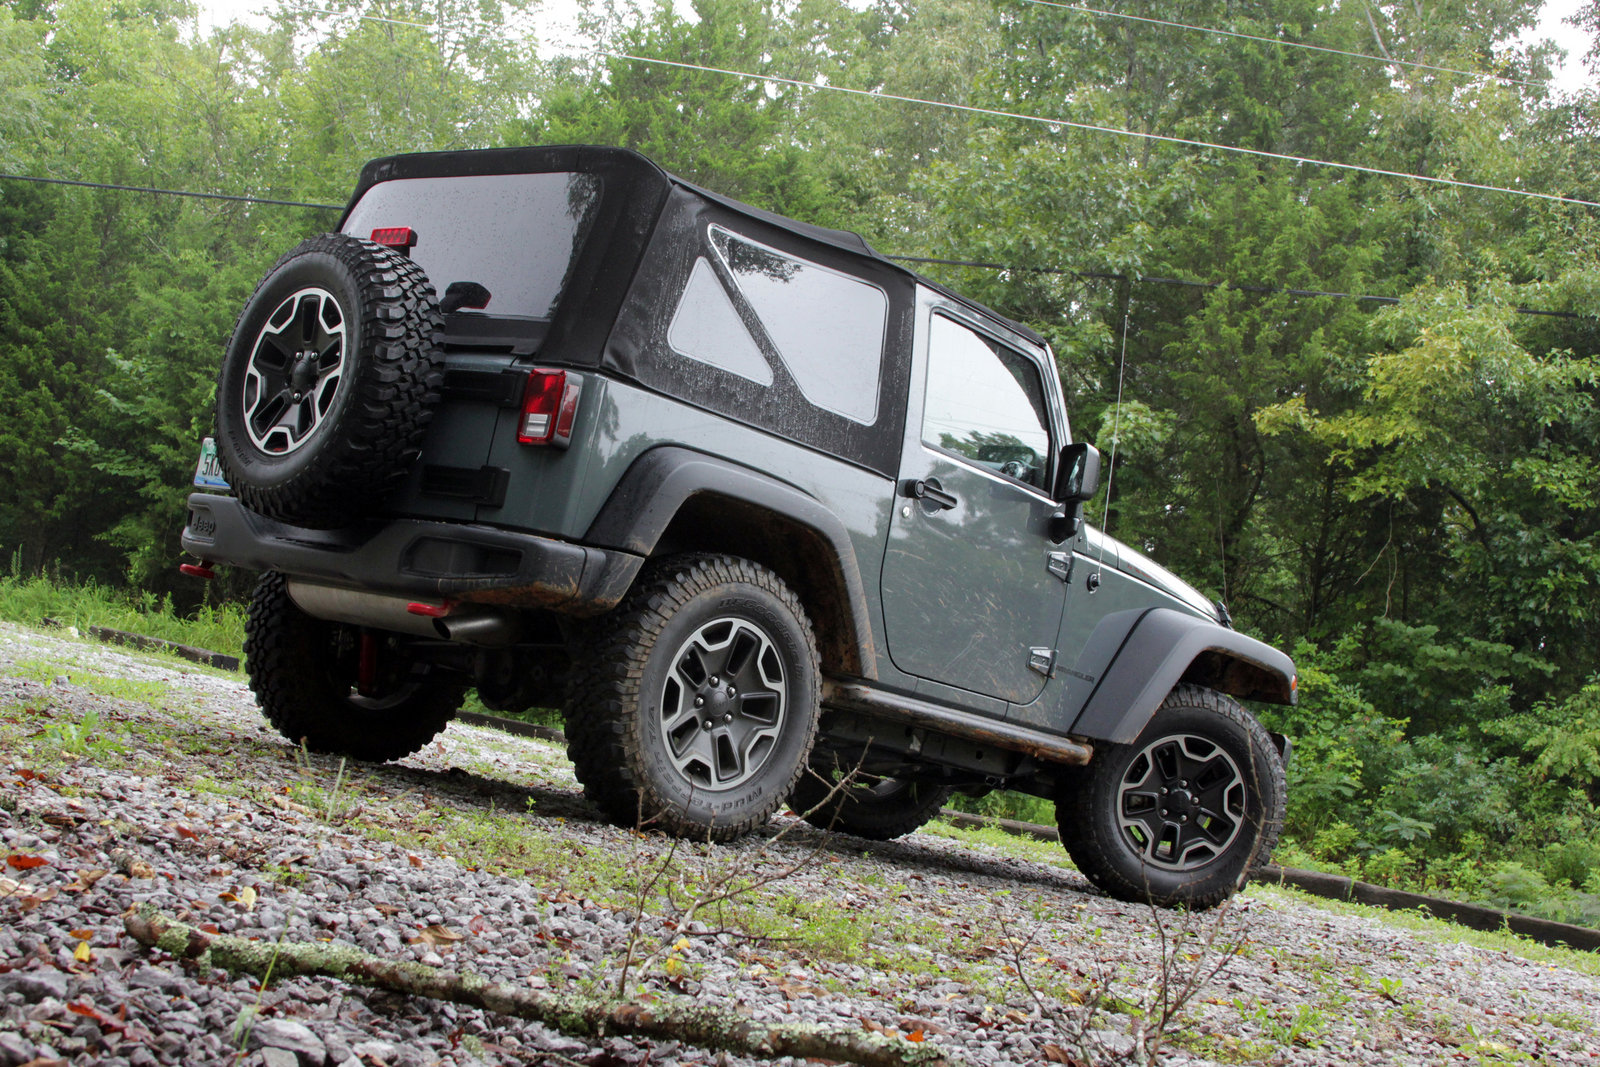 2014 jeep wrangler rubicon x driven picture 564968 car review top speed. Black Bedroom Furniture Sets. Home Design Ideas